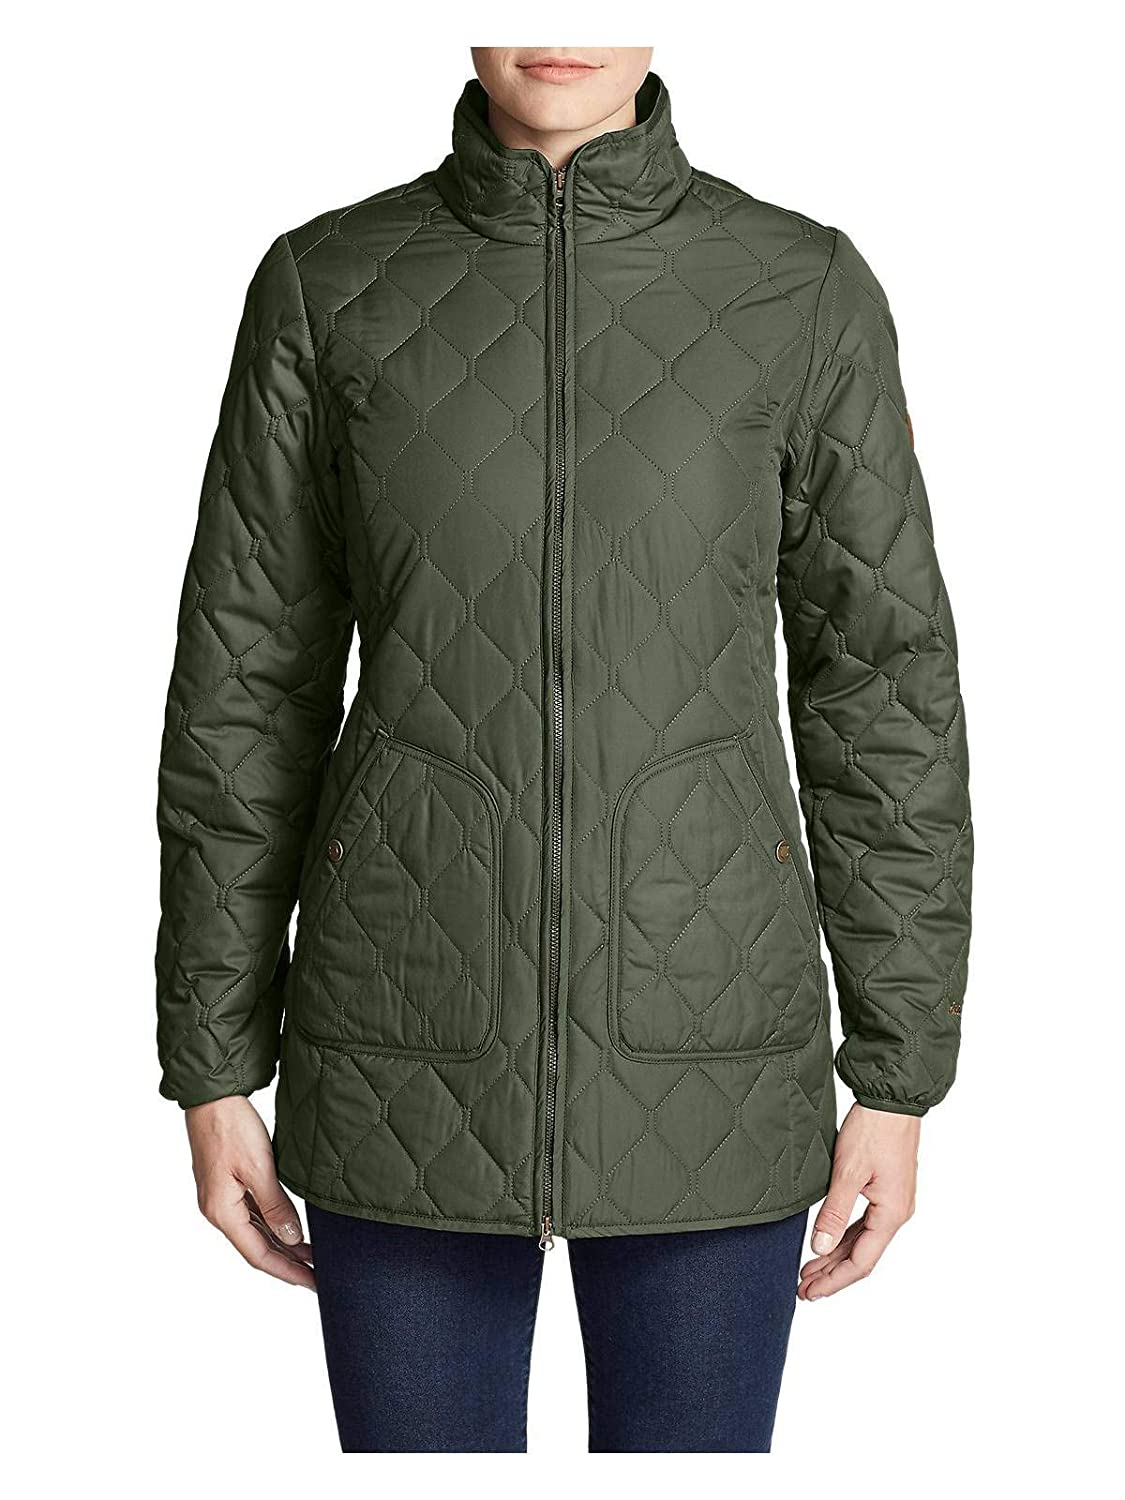 Dk Loden (Green) Eddie Bauer Women's YearRound 2.0 Field Coat